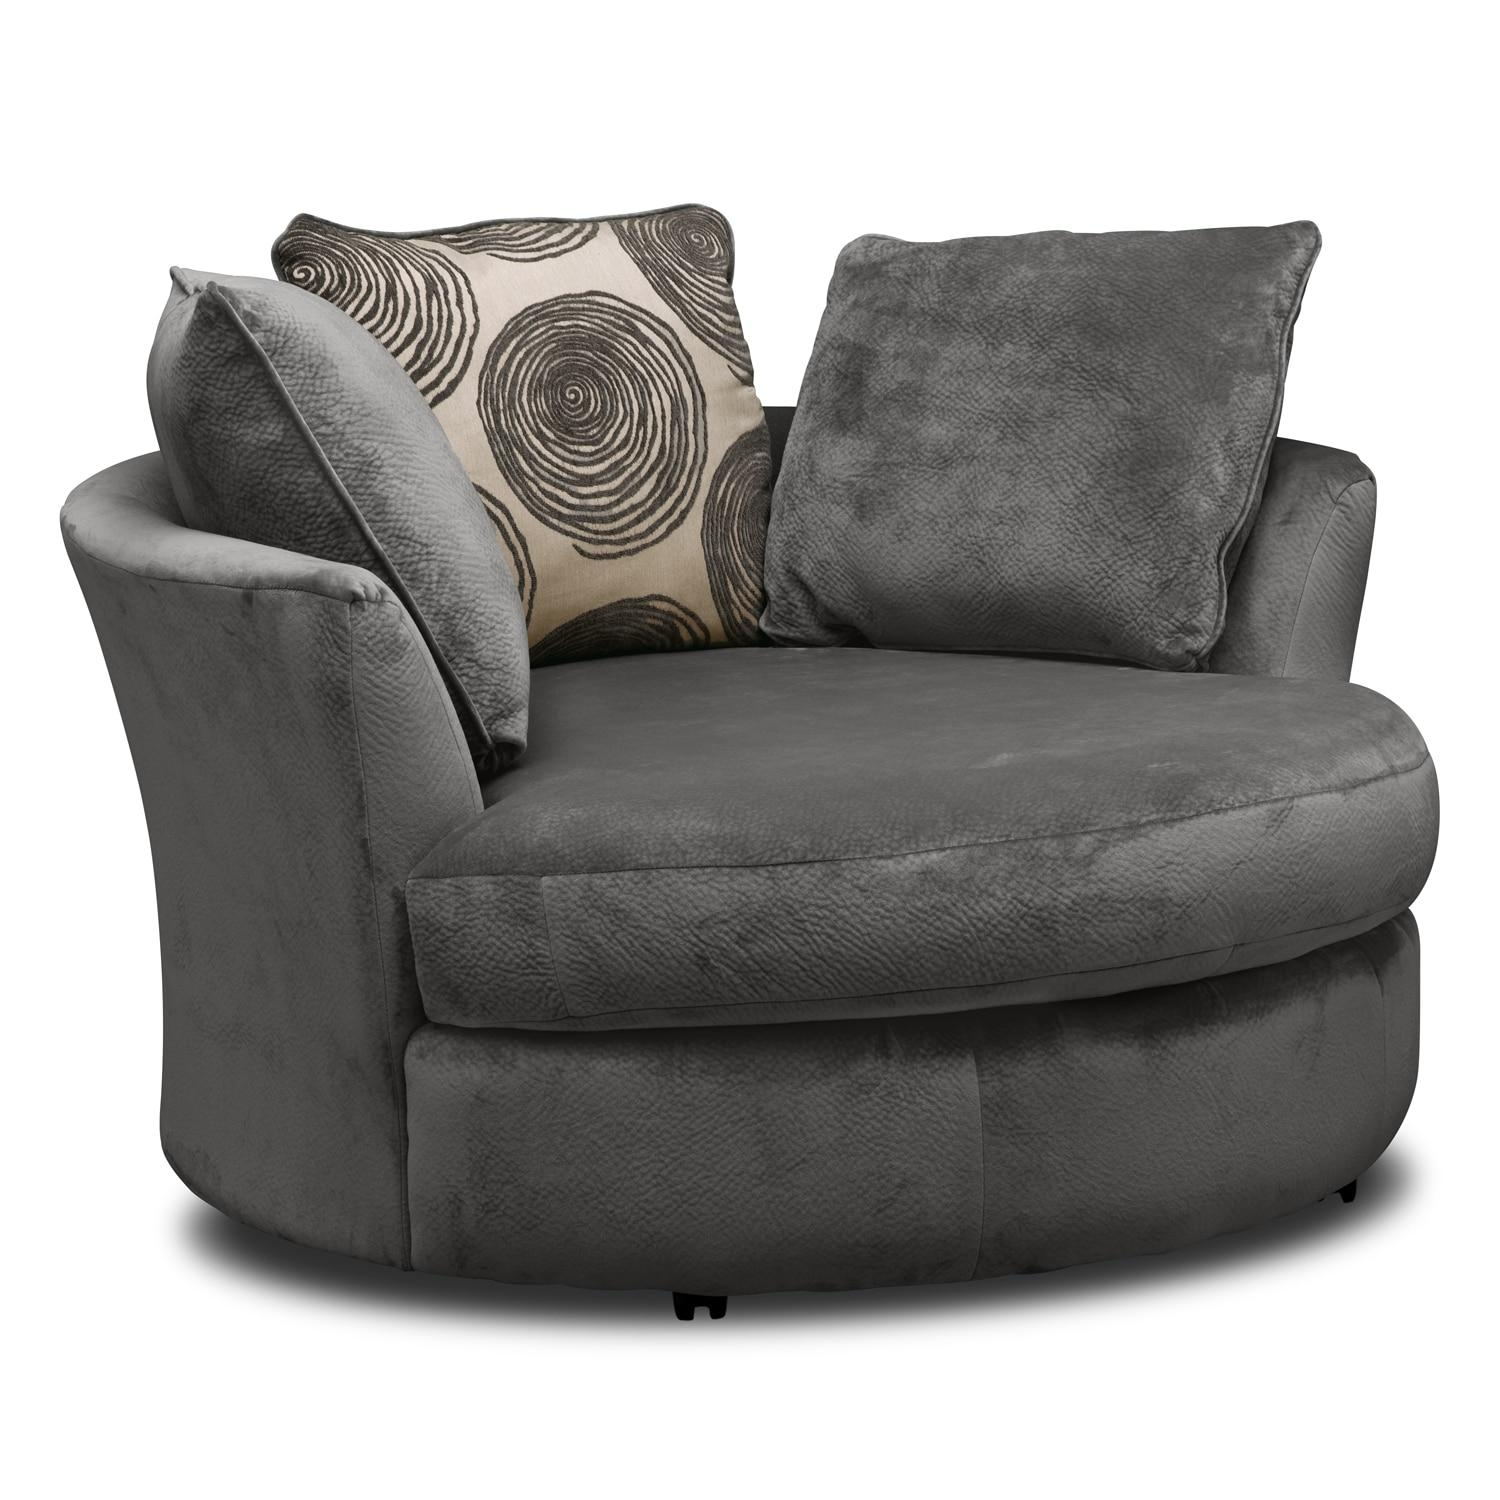 Cordelle Sofa, Loveseat And Swivel Chair Set – Gray | Value City In Sofa Loveseat And Chairs (Image 11 of 20)